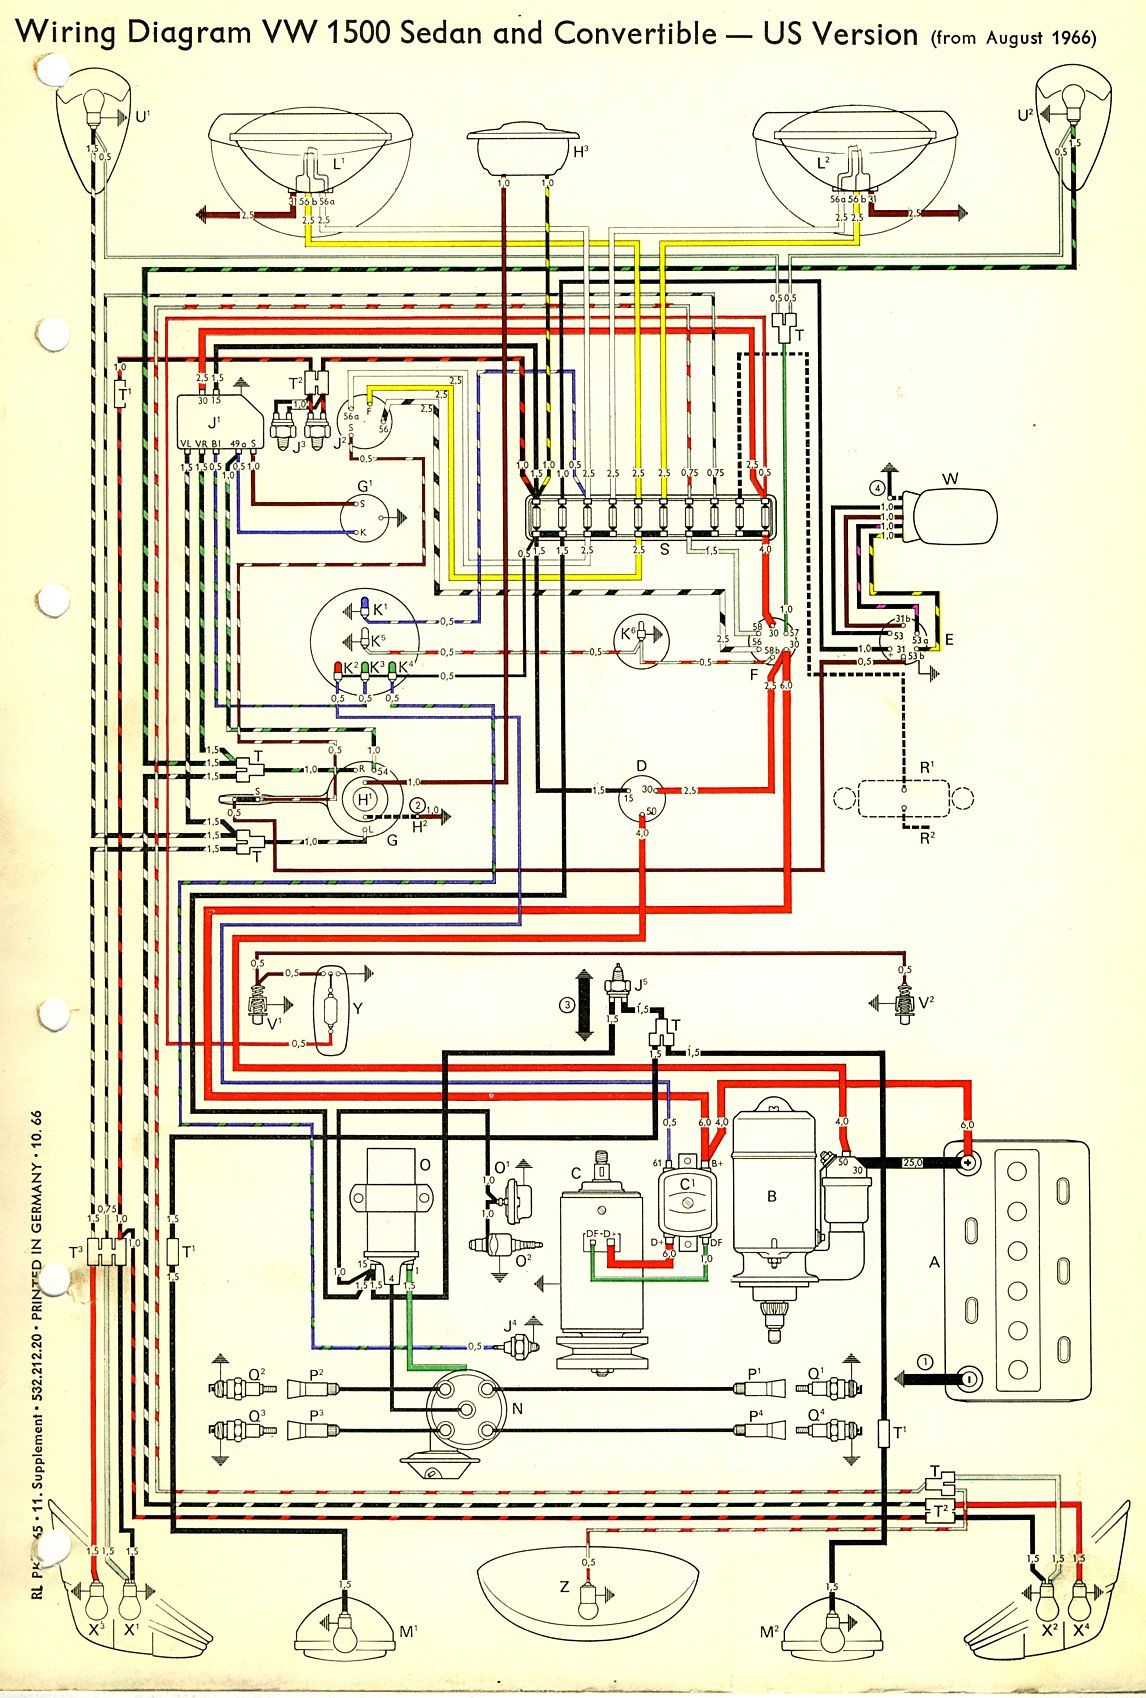 1adf990c0efb617c789fdd21338448b0 1967 beetle wiring diagram (usa) thegoldenbug com best 1967 vw vw bug wiring diagram at cos-gaming.co